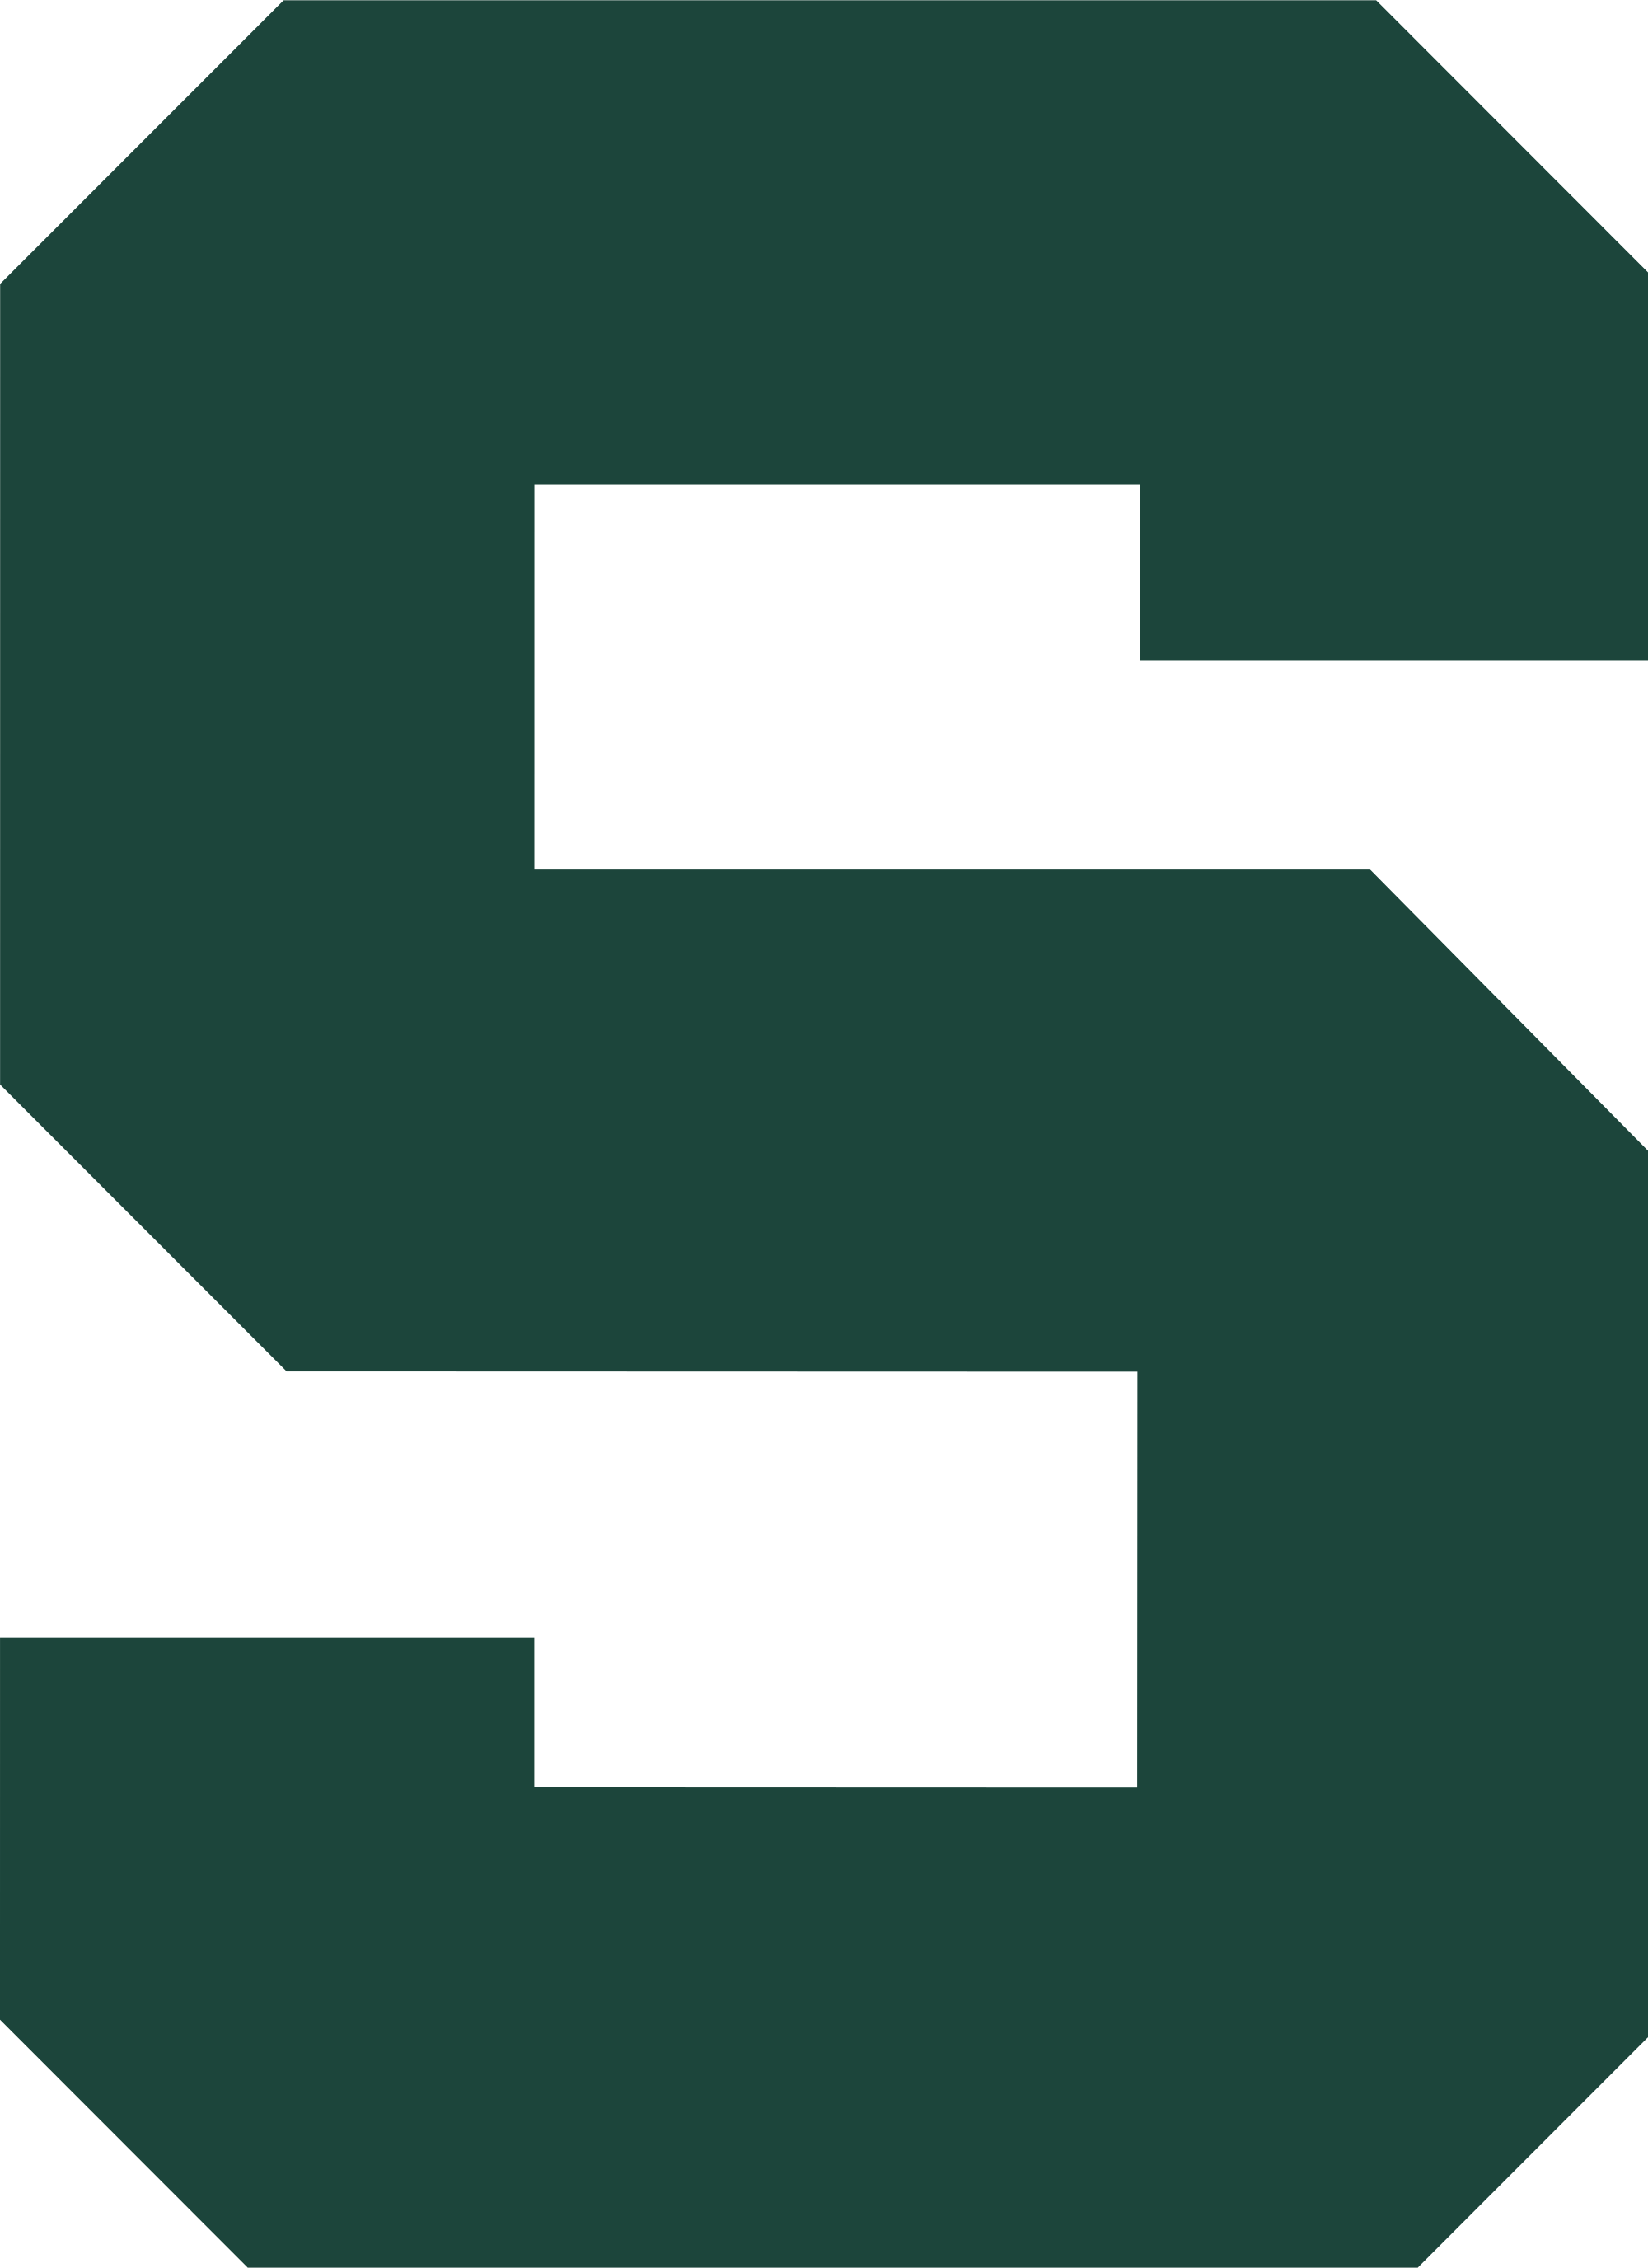 File:Michigan-State-logo-block-s.svg